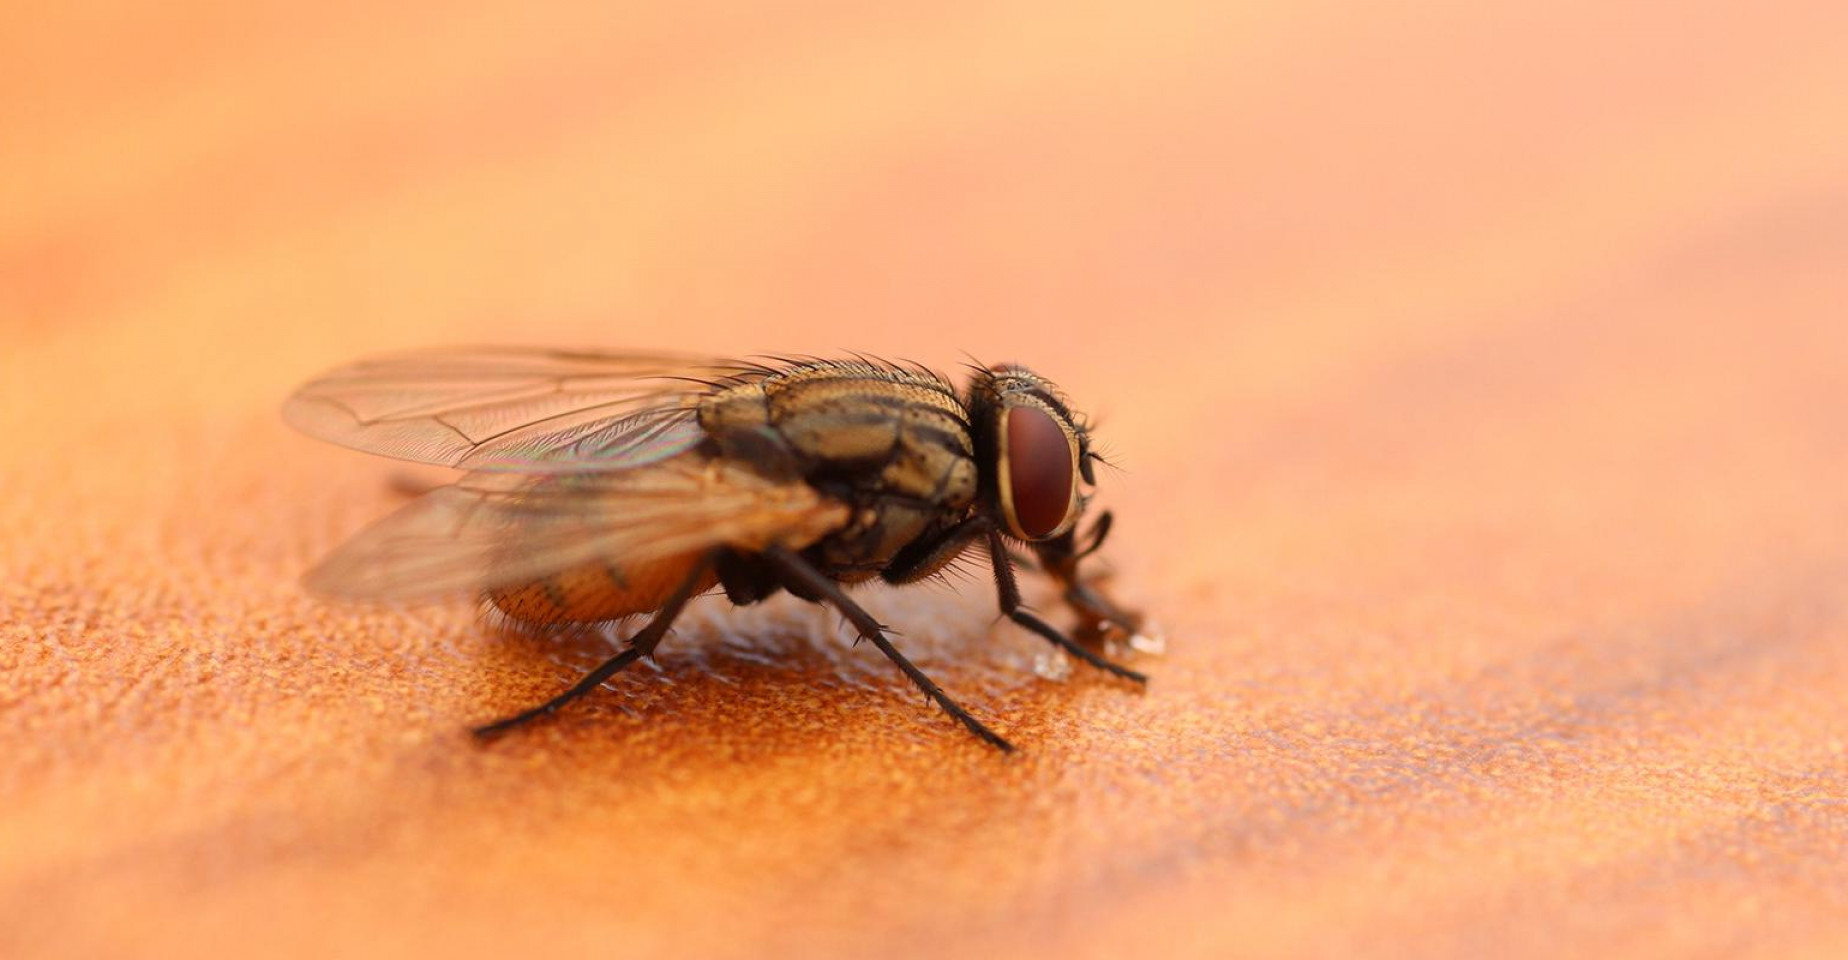 Mechanical Transmission Of Disease Vectors: Can Pigs Become Infected Asf Eating Flies